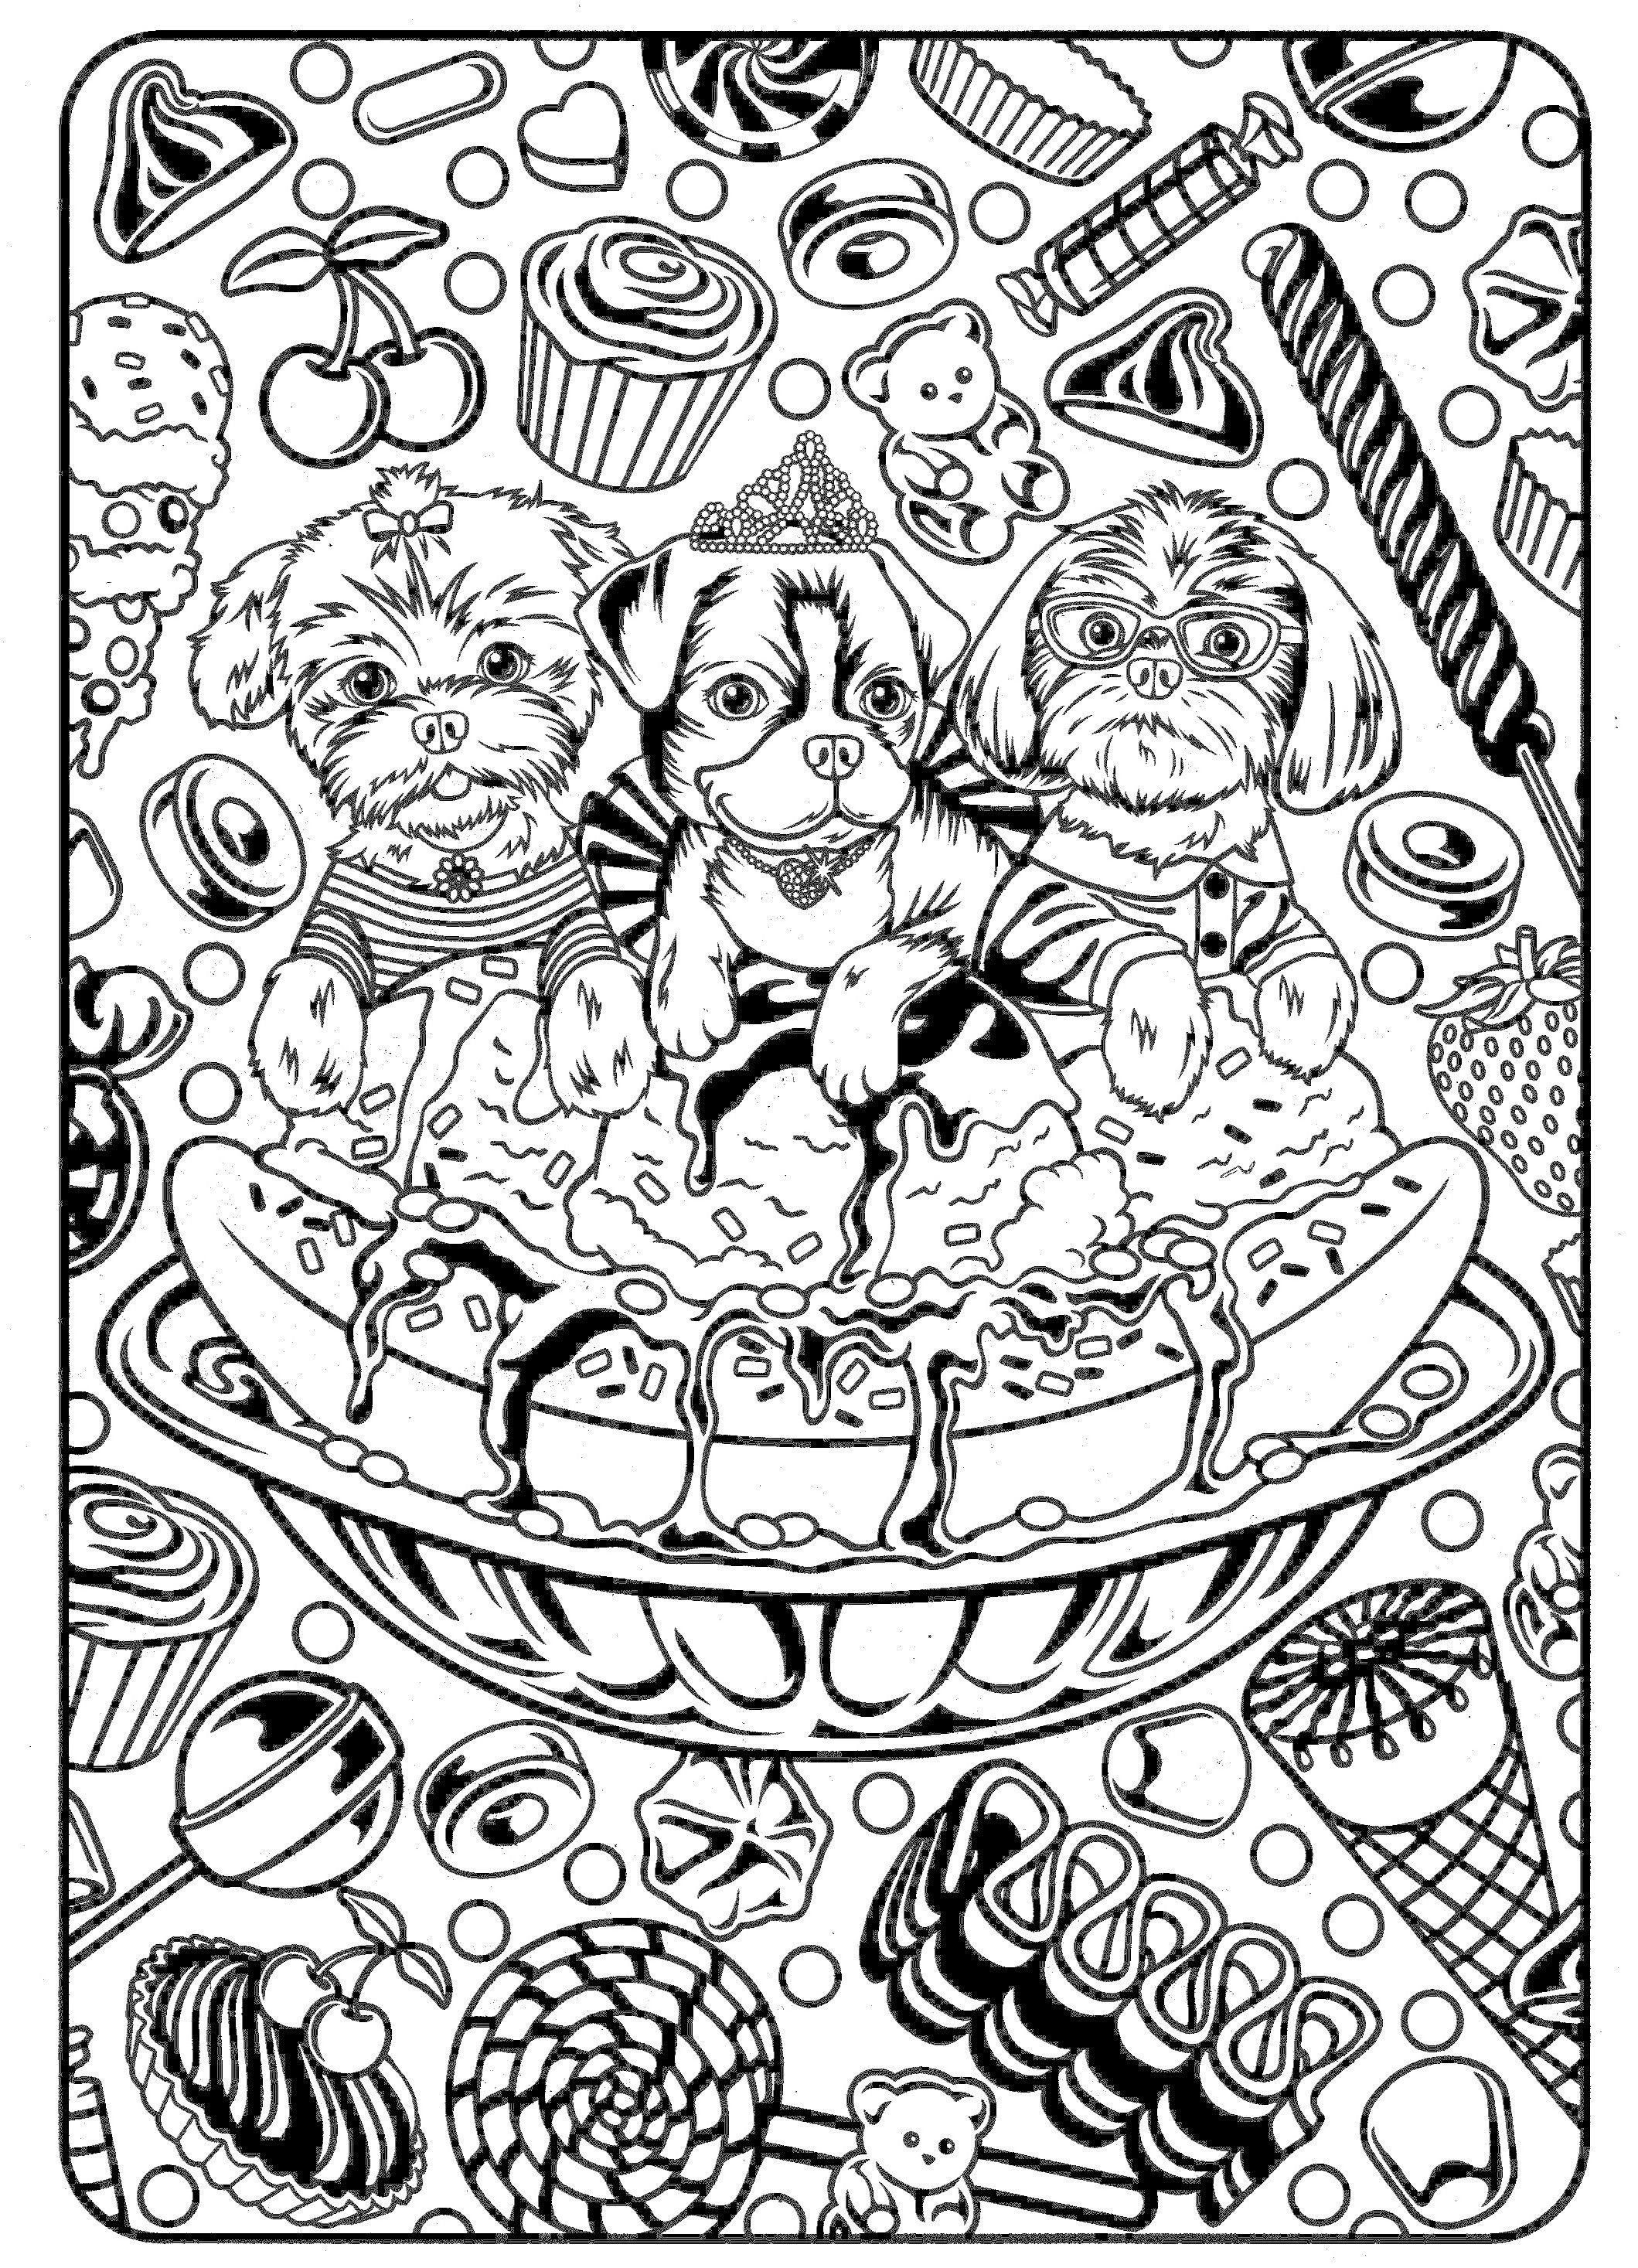 Sugar Skull Coloring Pages Beautiful Best Sugar Shack Coloring Pages Nocn Pokemon Coloring Pages Cool Coloring Pages Space Coloring Pages